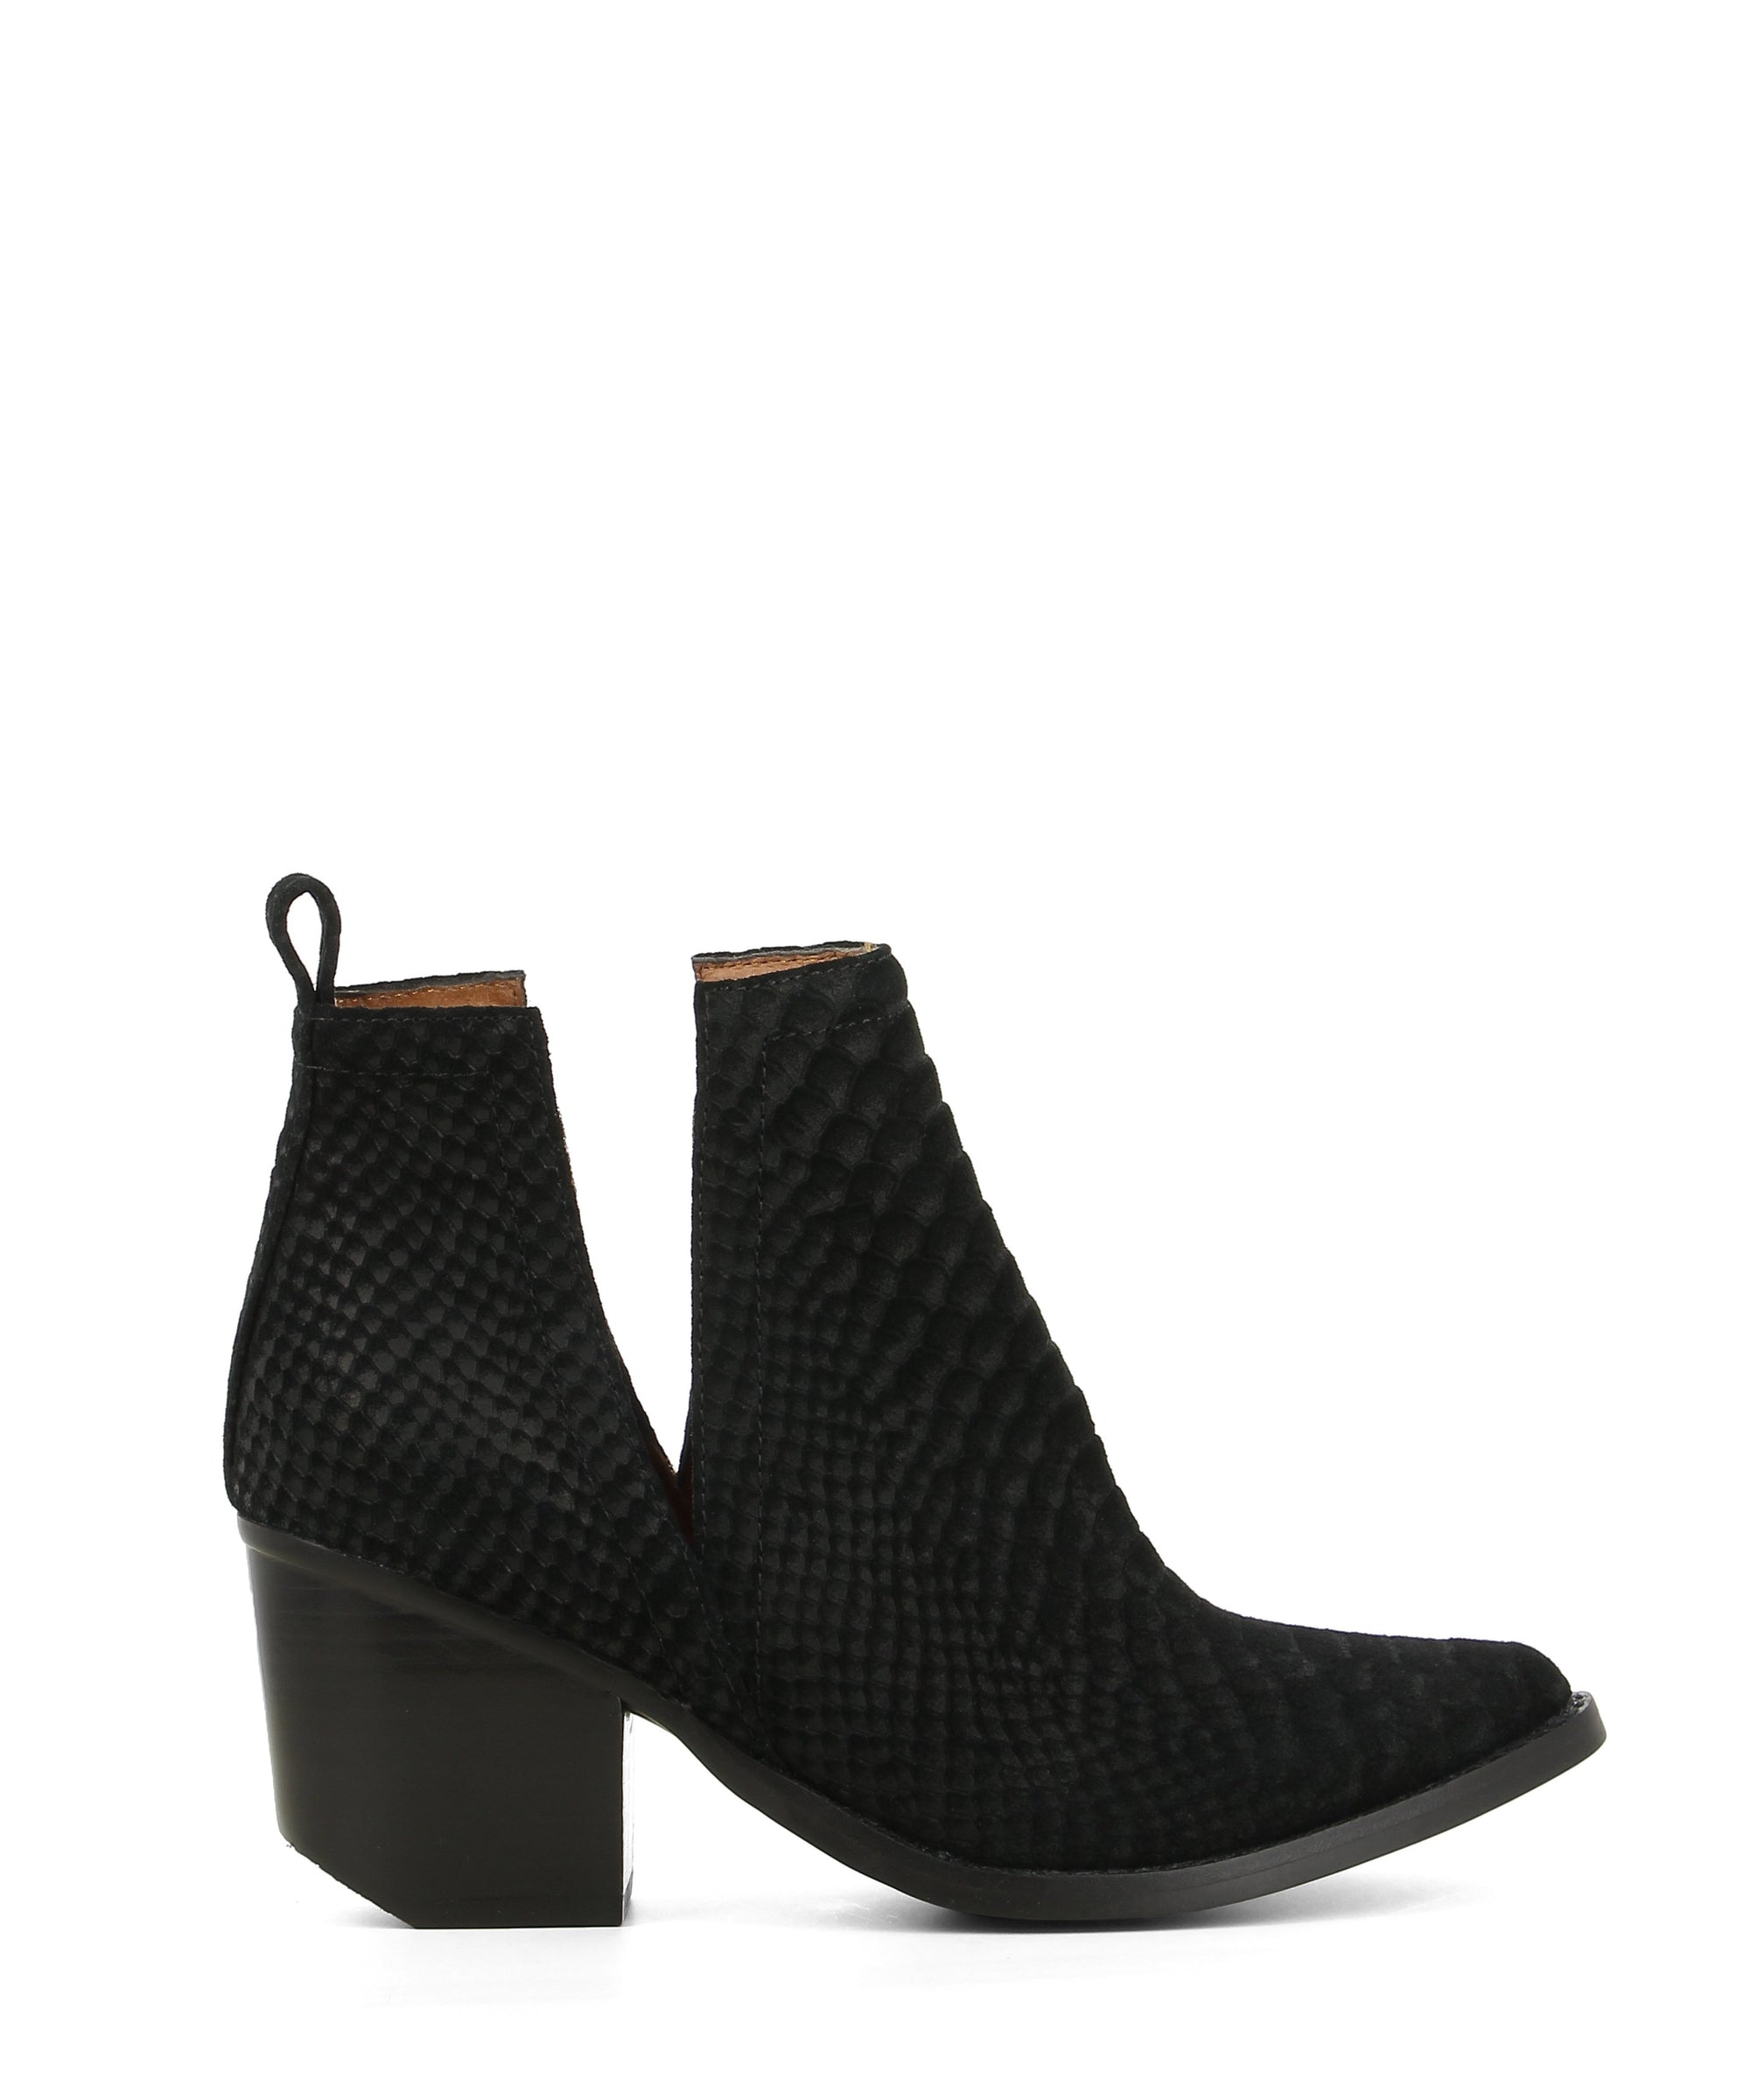 A slip on black suede, western style ankle boot with, a subtle snake print to the upper, a block heel and a pointed toe by Jeffrey Campbell.